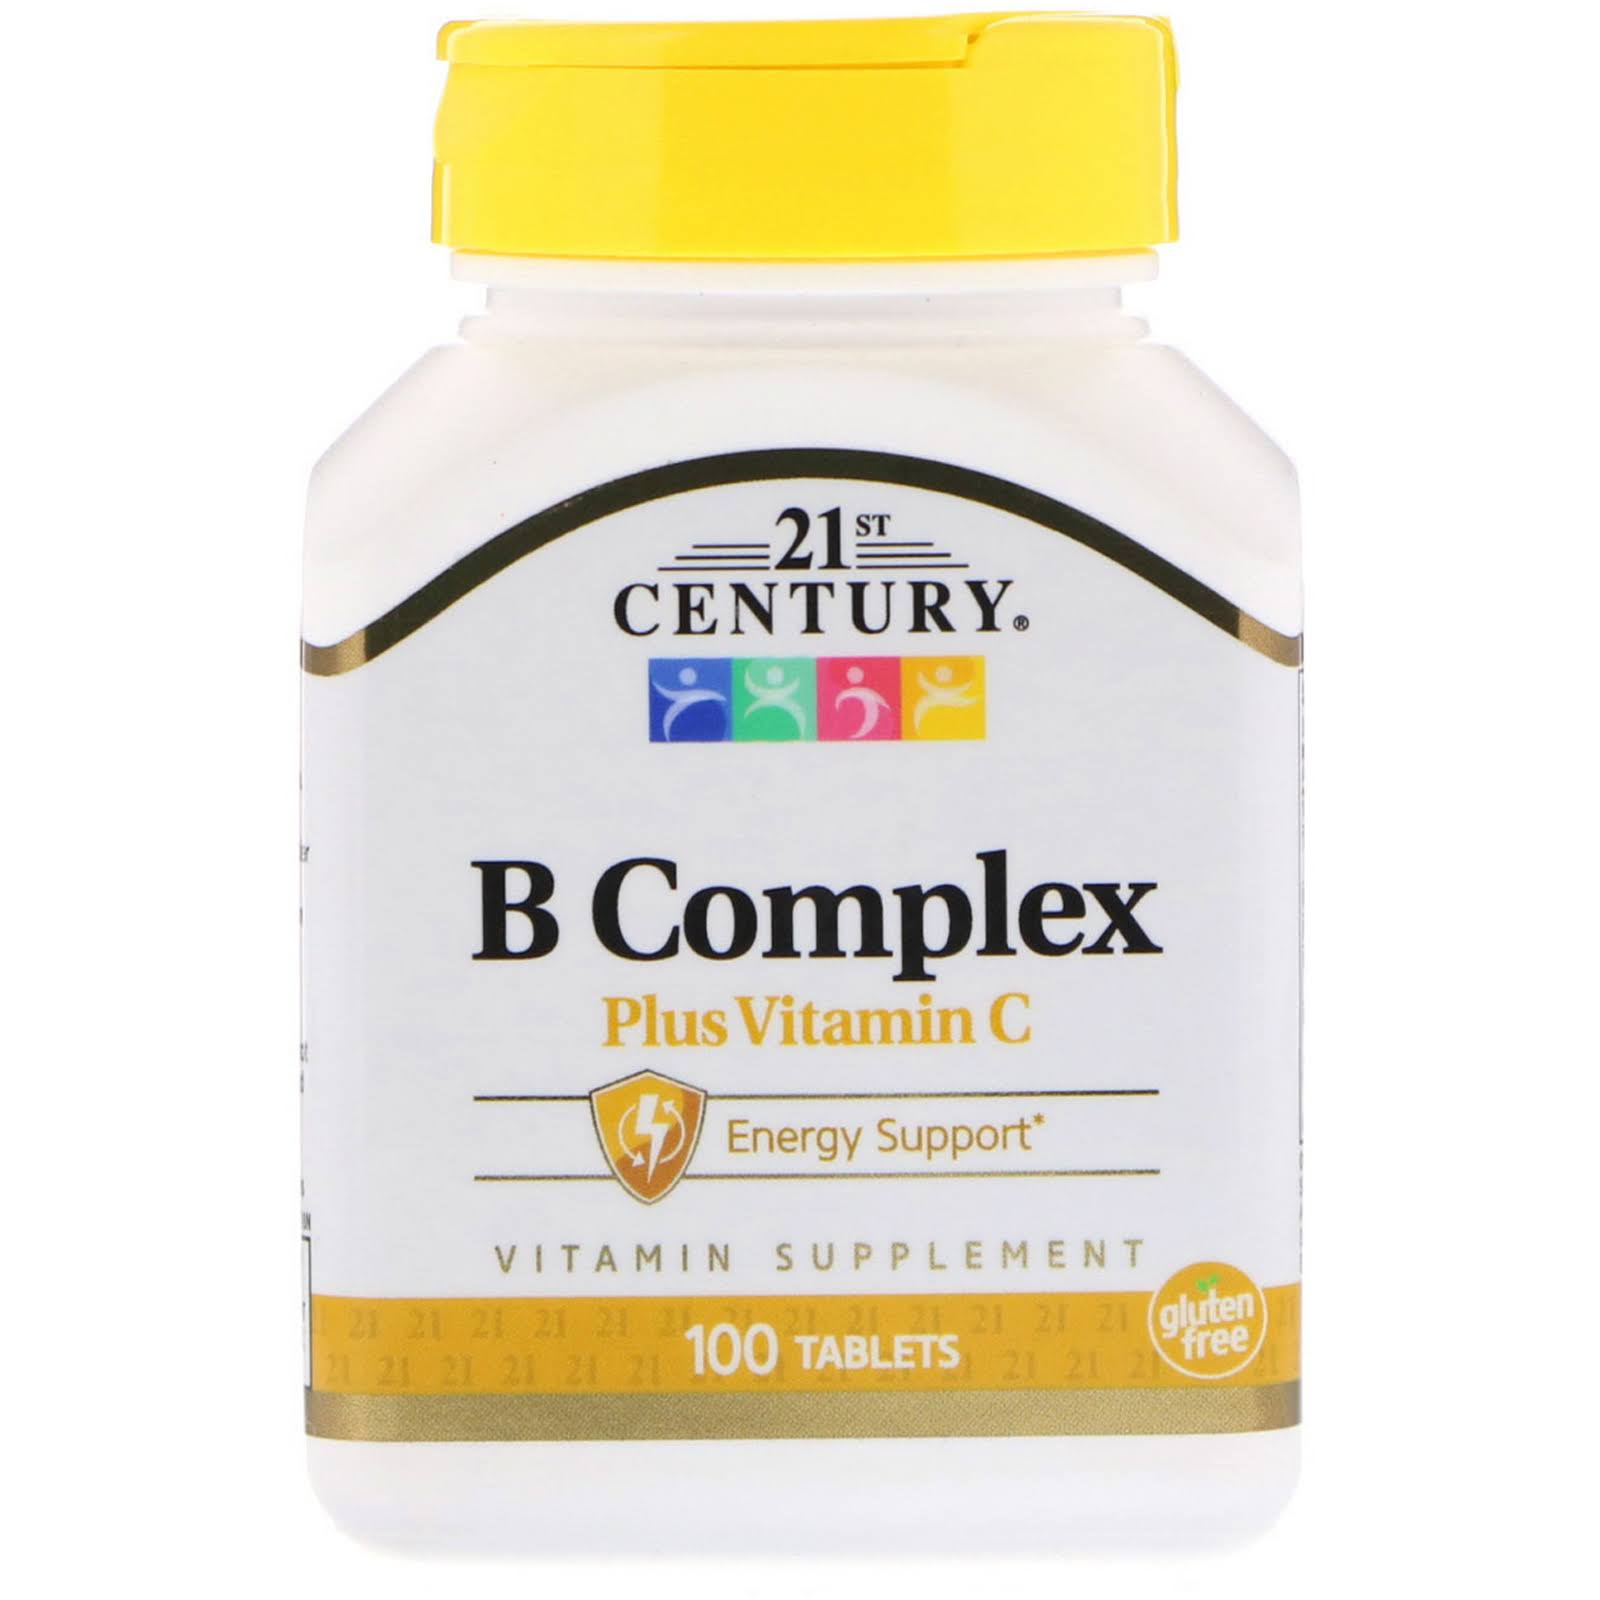 21ST Century B Complex With C Supplement - 100ct